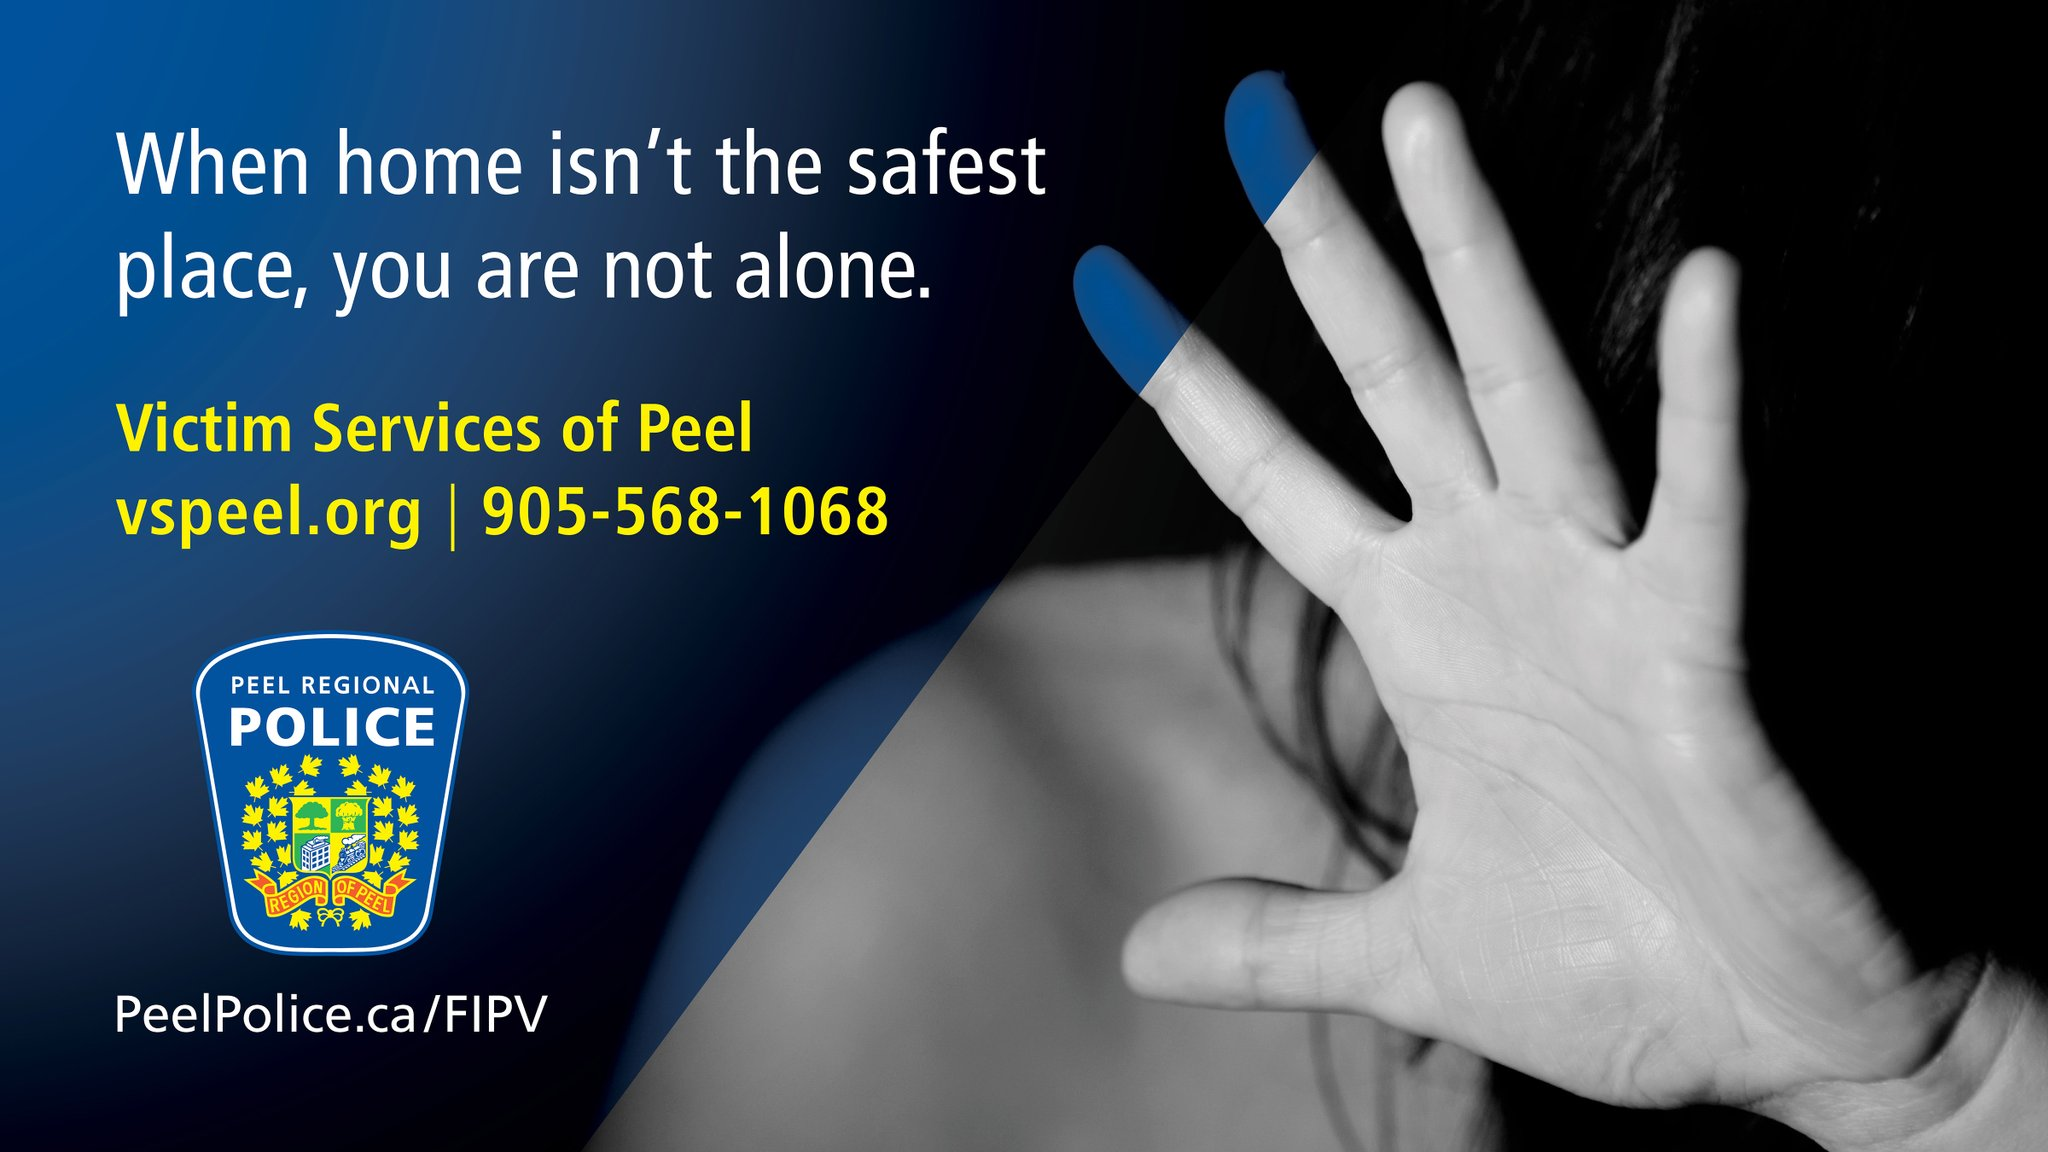 Peel Regional Police On Twitter When Home Isn T The Safest Place You Are Not Alone Support Resources And Safety Plans Are Available Https T Co Gqyhczvwnf Victimservpeel Pcawa1 Safecentre Https T Co J0wkktvosq